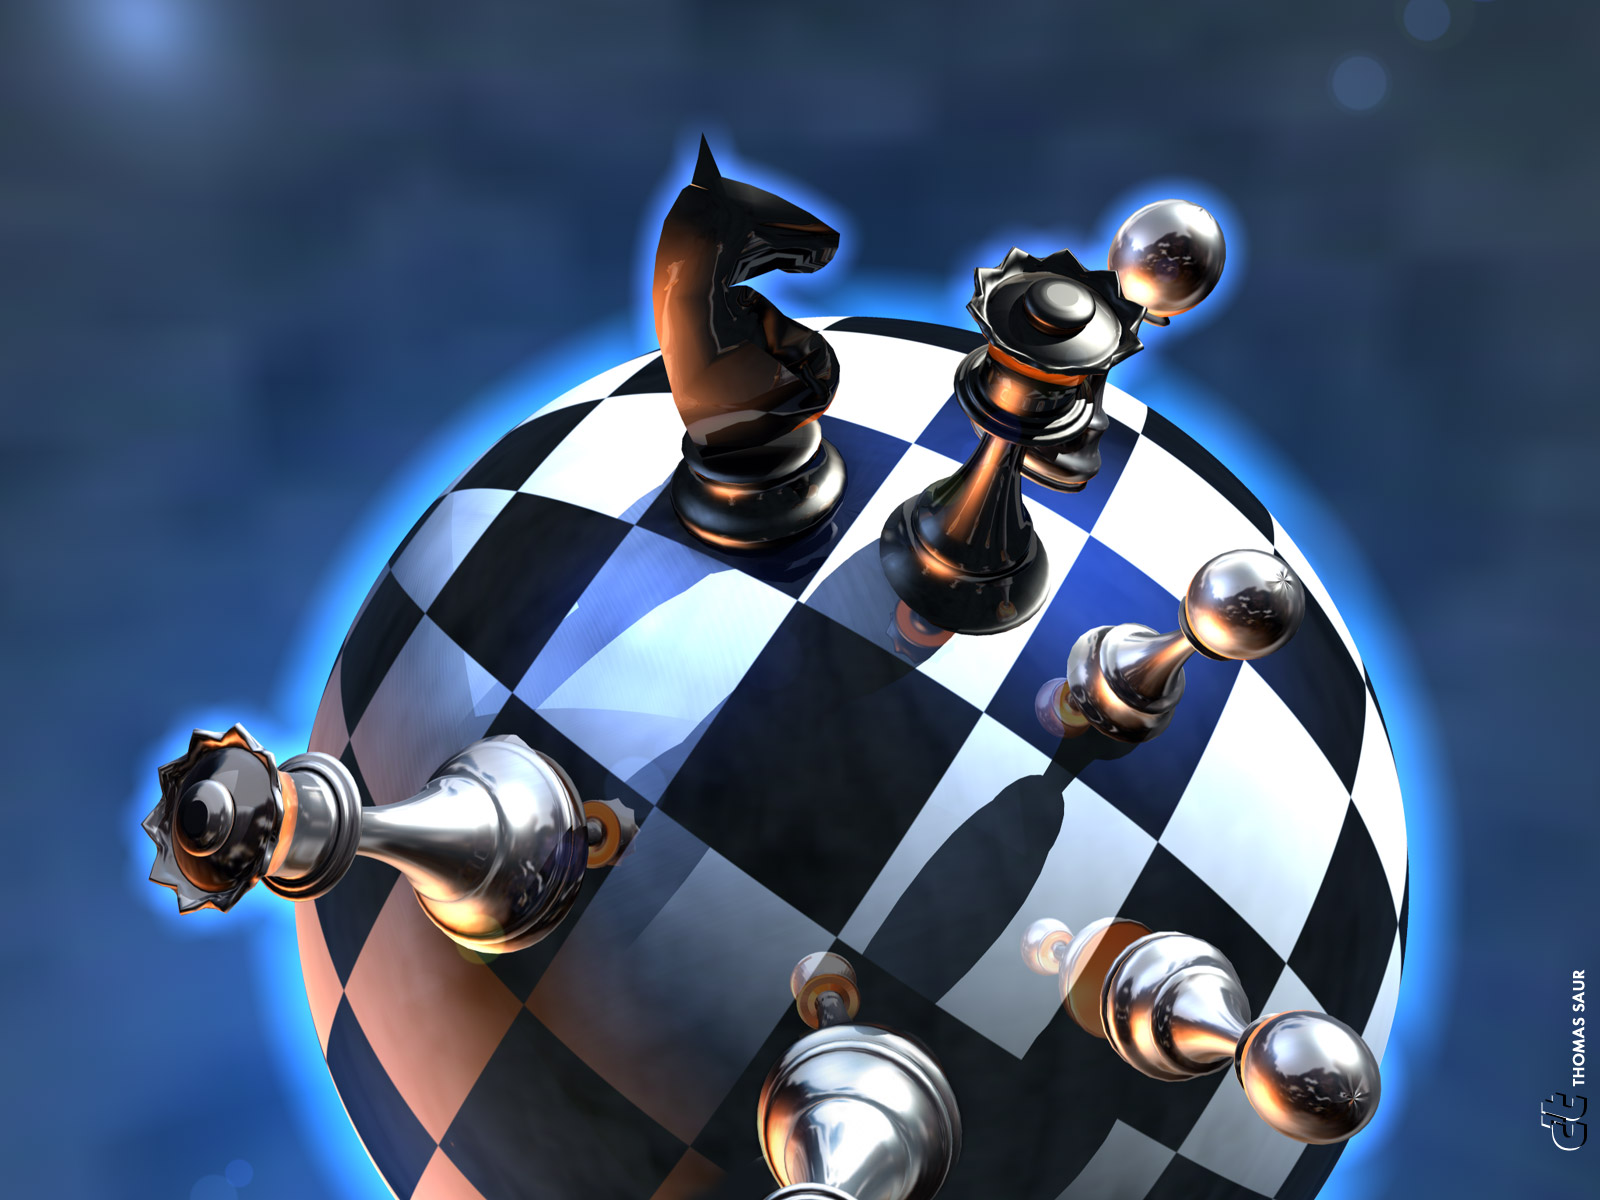 Chess 3d graphics wallpaper chess 3d graphics voltagebd Choice Image